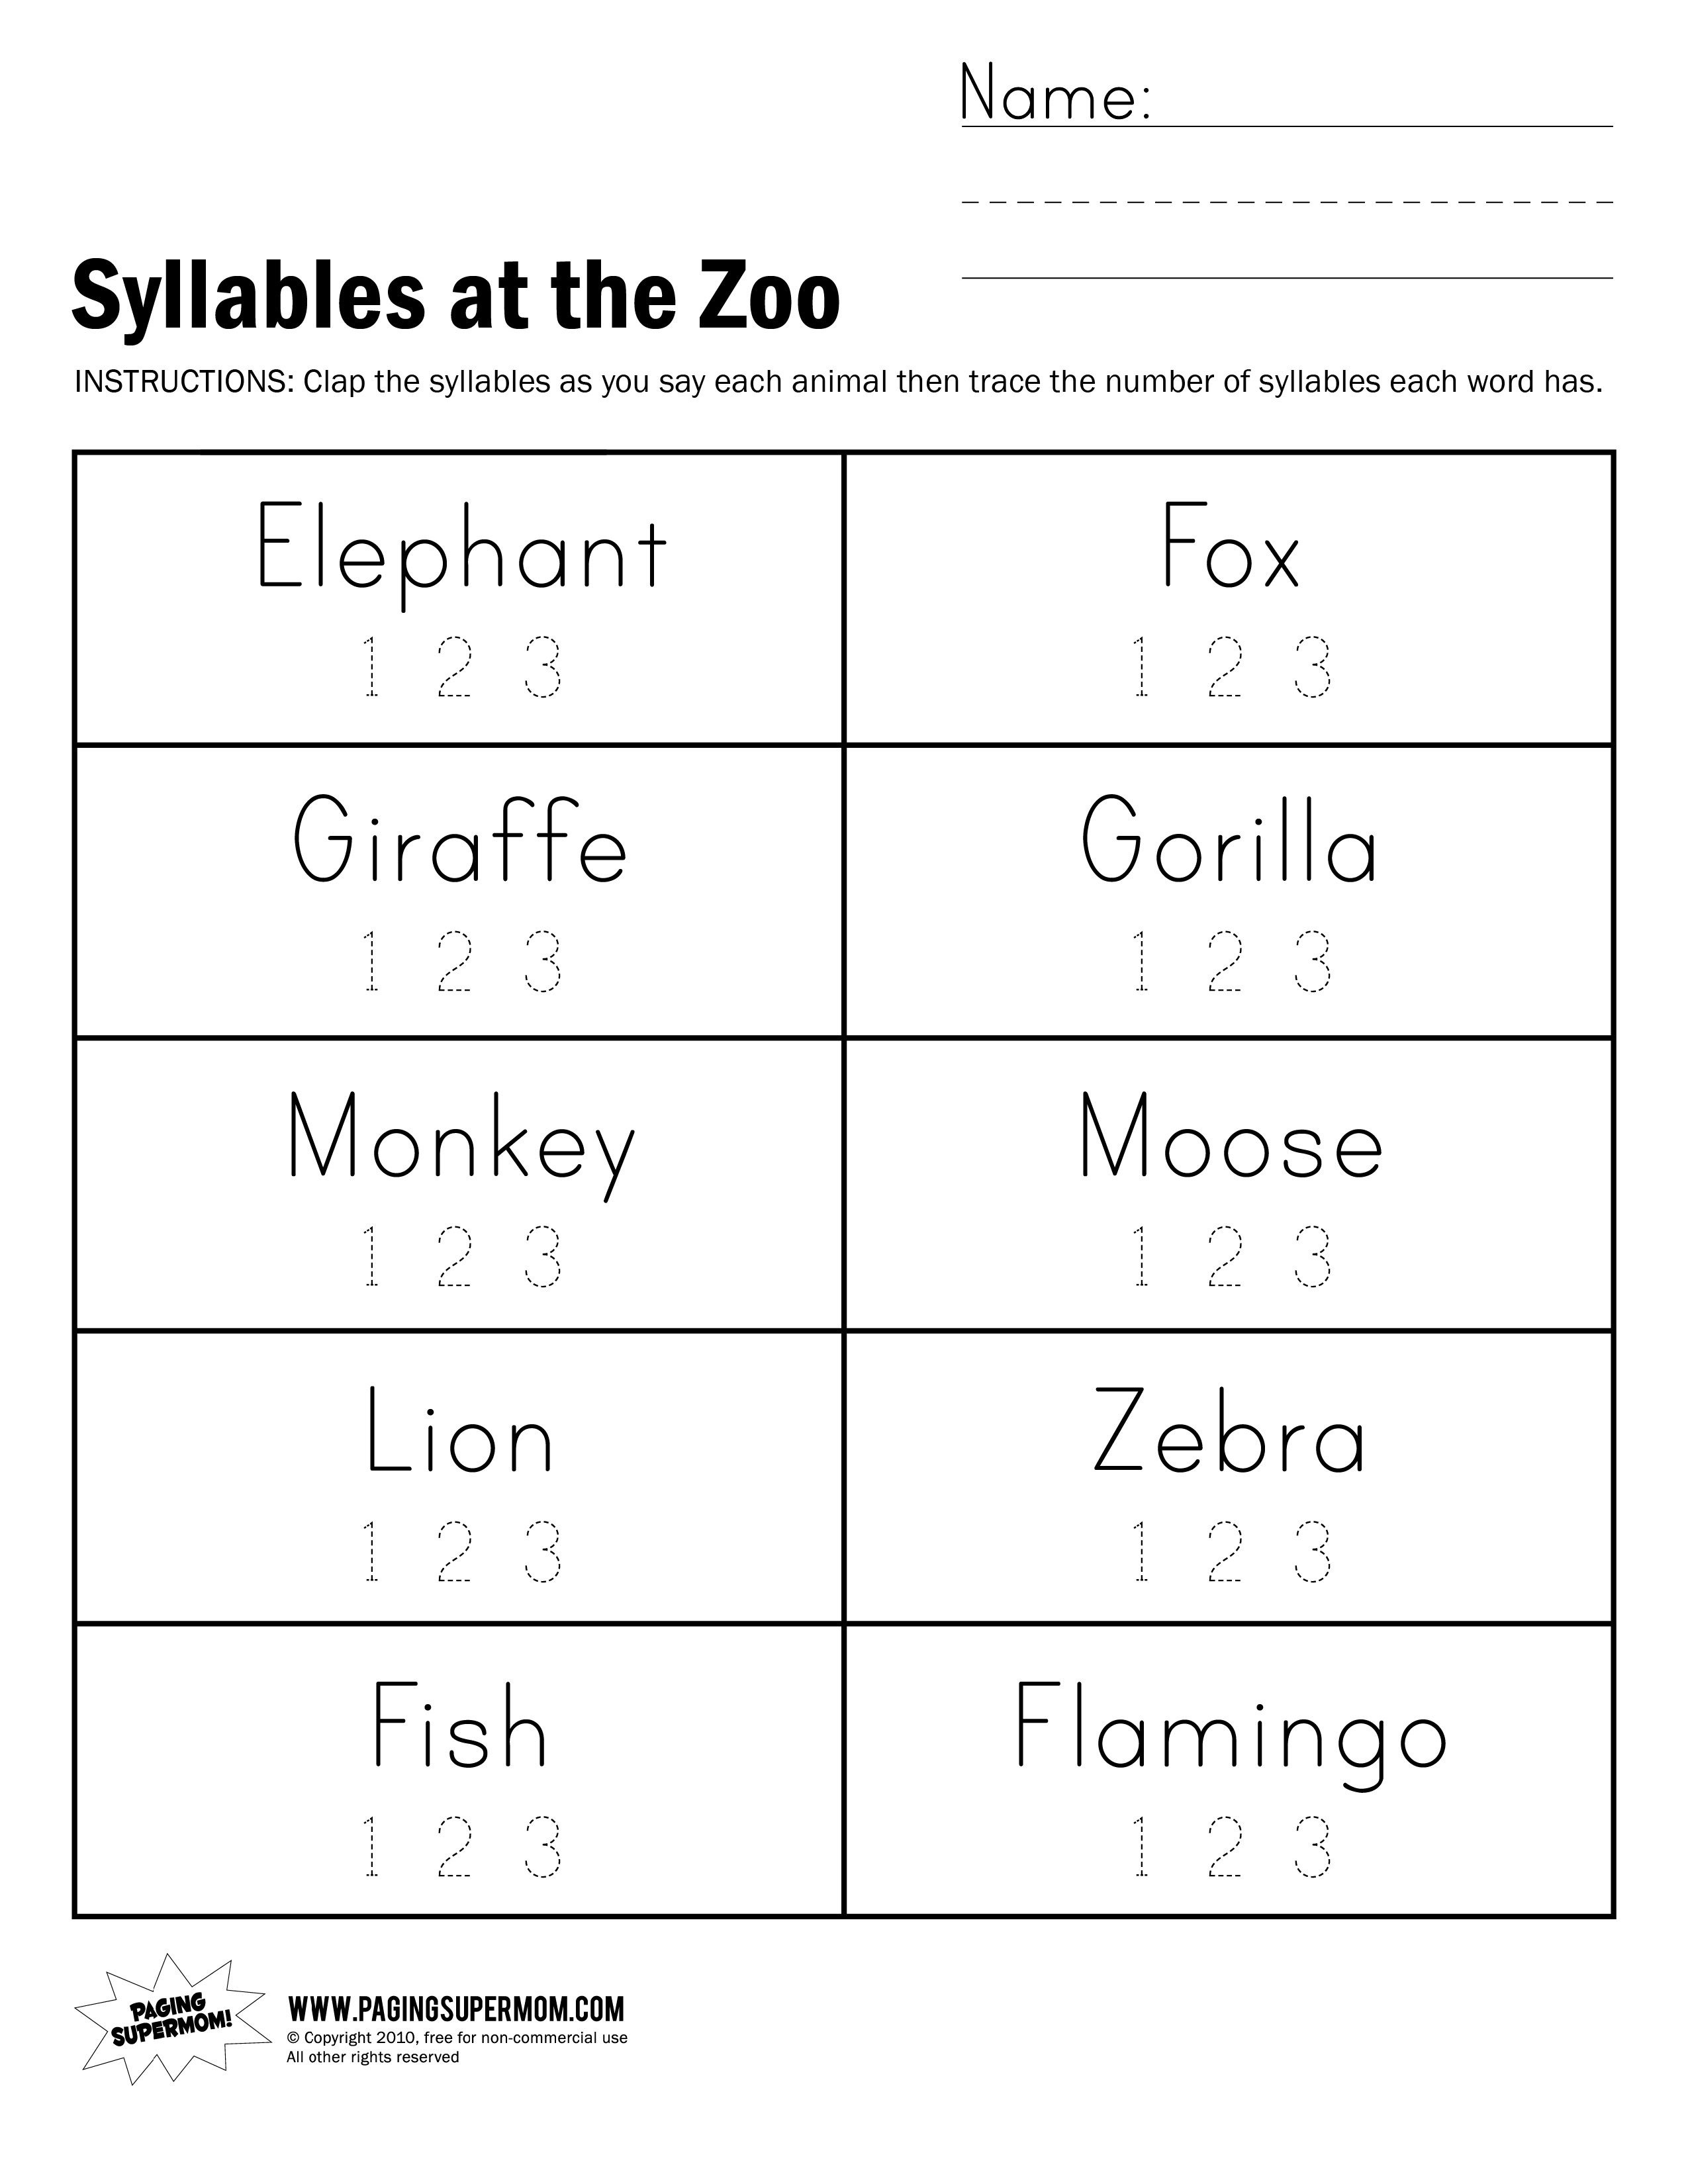 Syllables At The Zoo Worksheet | Paging Supermom | School Practice - Free Printable Open And Closed Syllable Worksheets